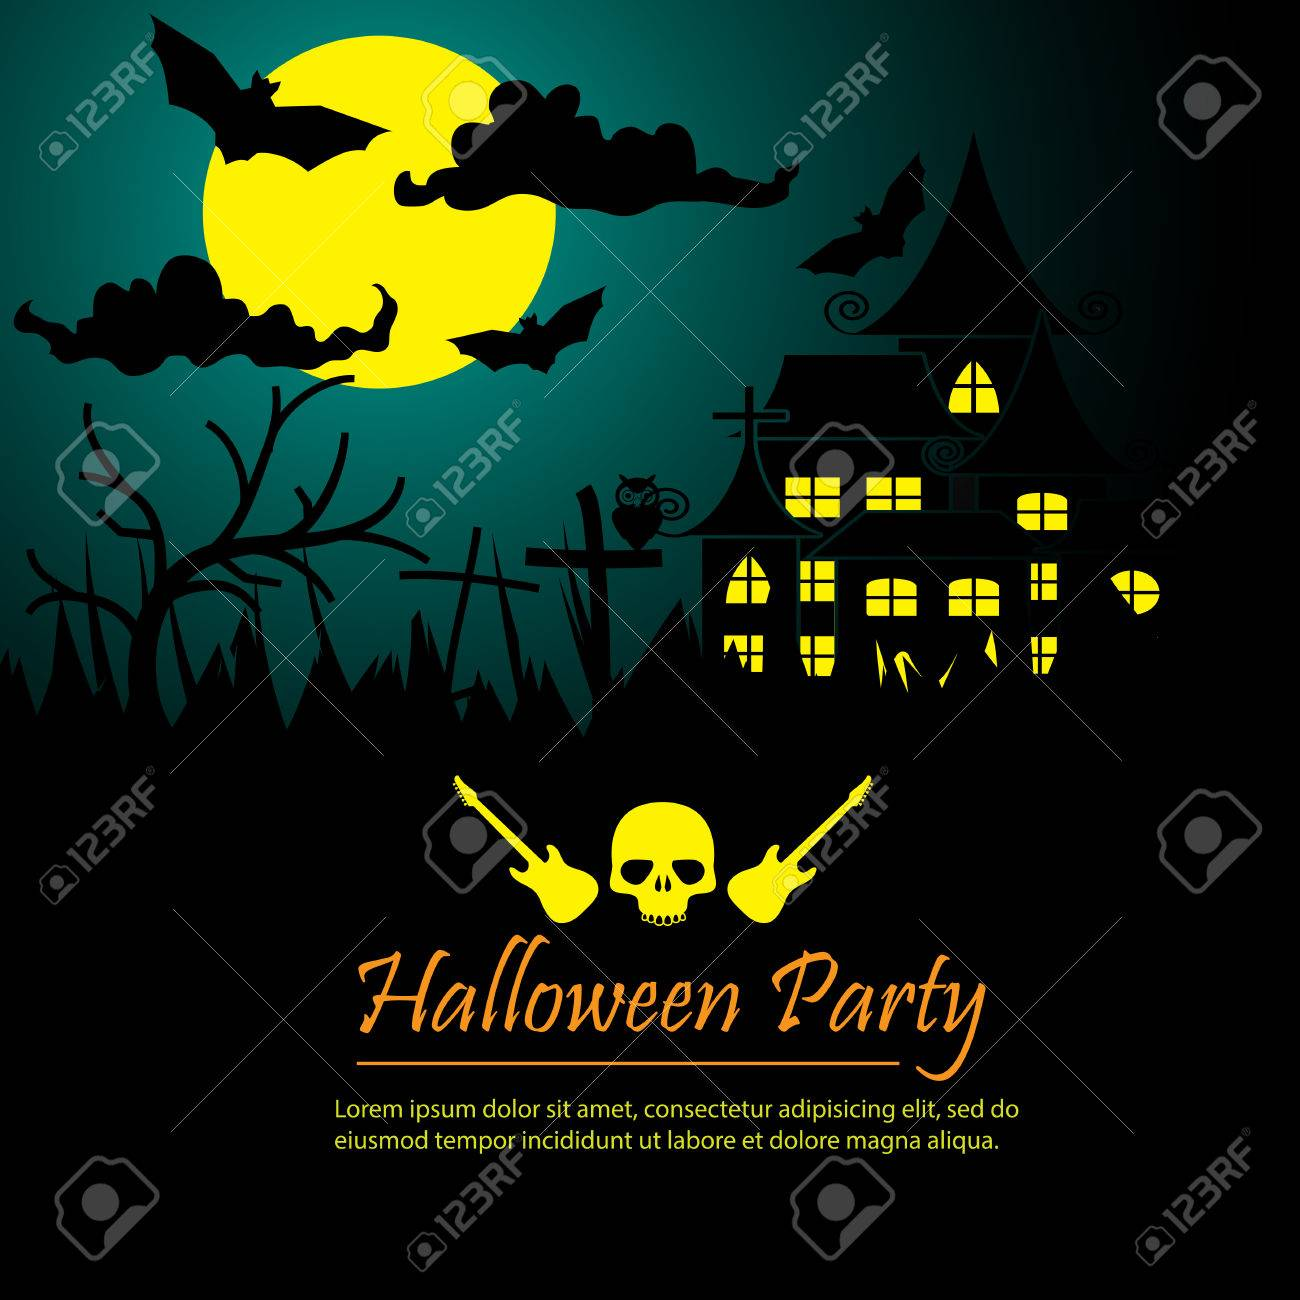 Halloween Party Poster Background Royalty Free Cliparts, Vectors ...